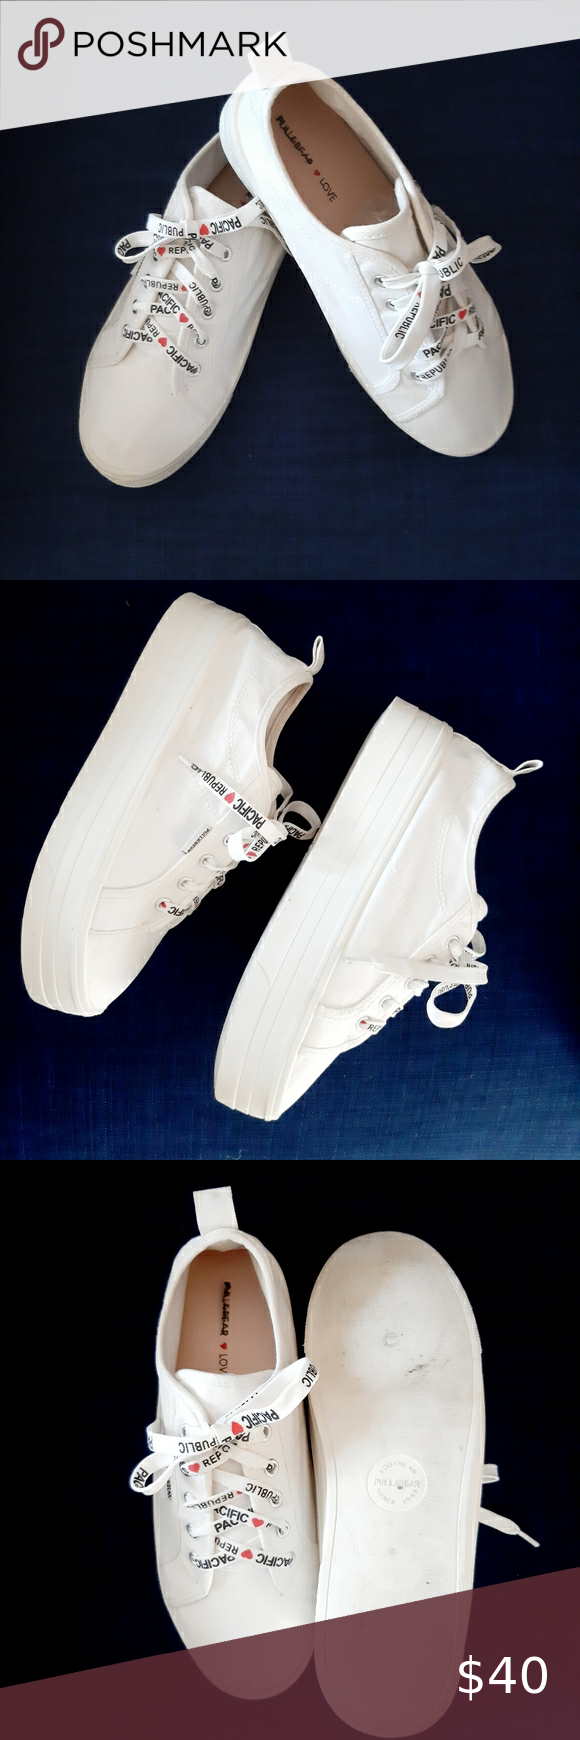 Pull And Bear White Chunky Sole Trainers Sz 7 Women S White Fabric Lace Up Trainers With The Slogan Pacific Lace Up Trainers Women Shoes Womens Shoes Sneakers